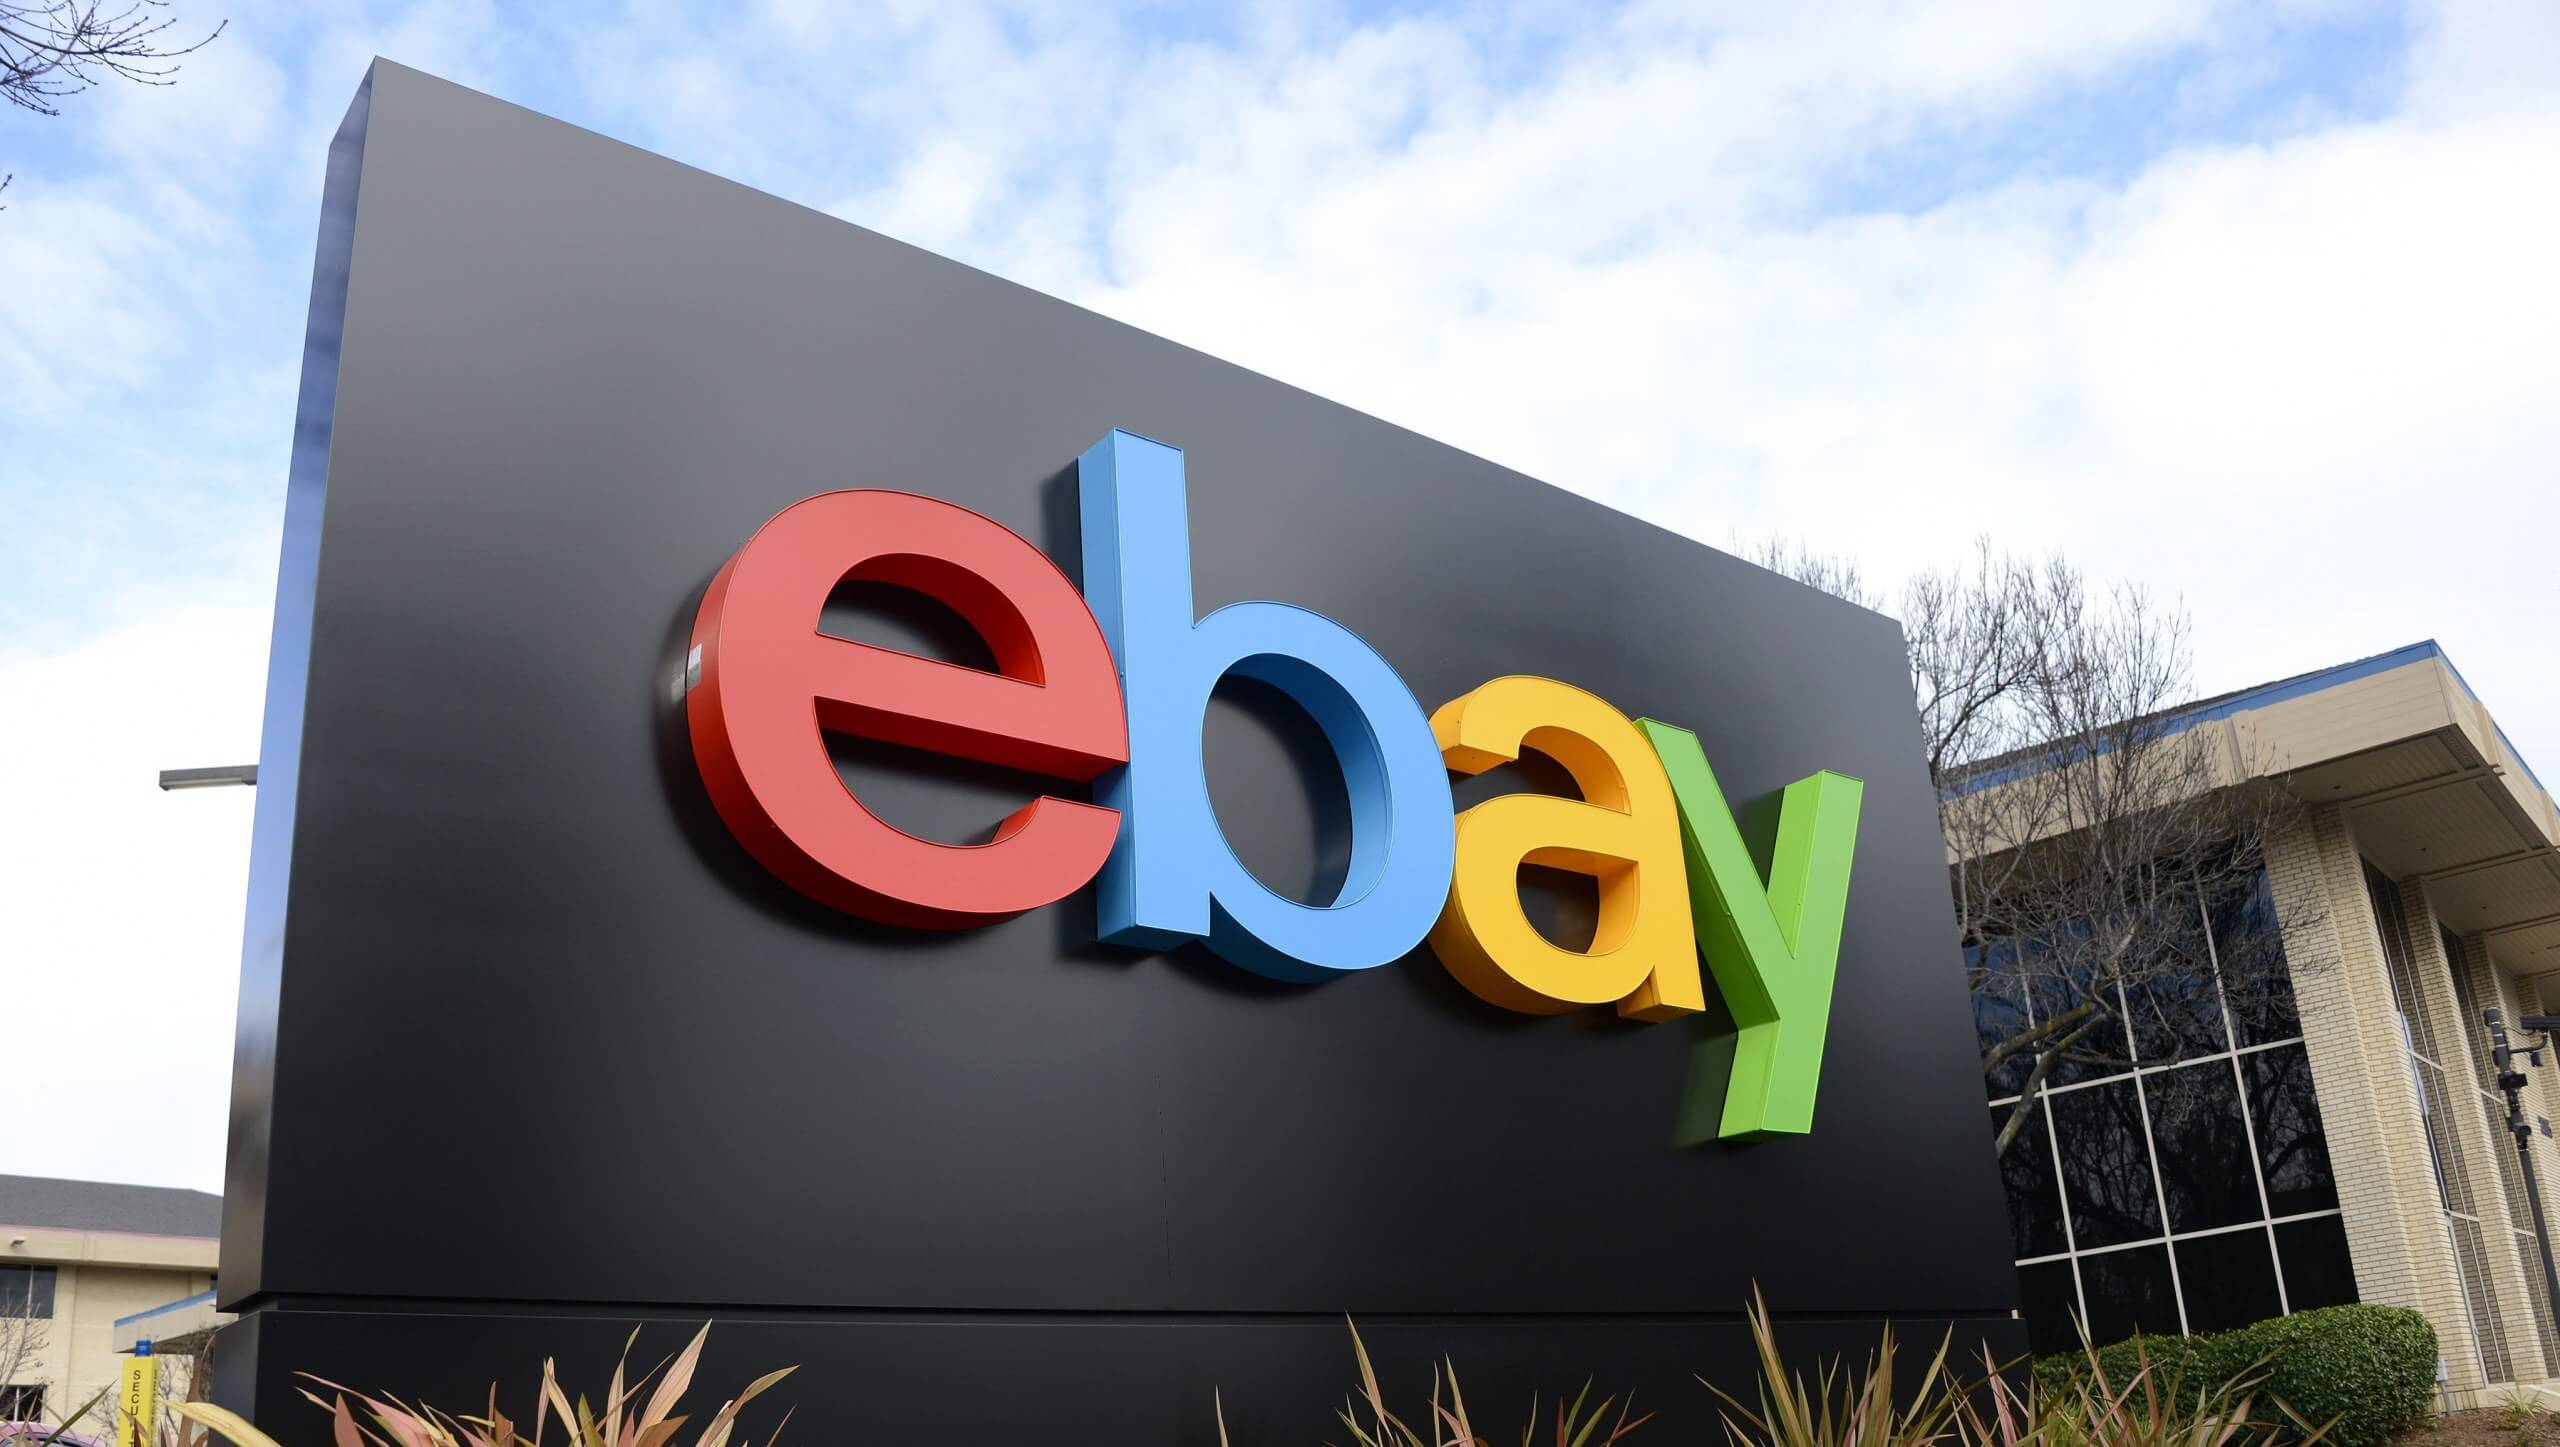 Amazon allegedly poached sellers from Ebay in violation of California law